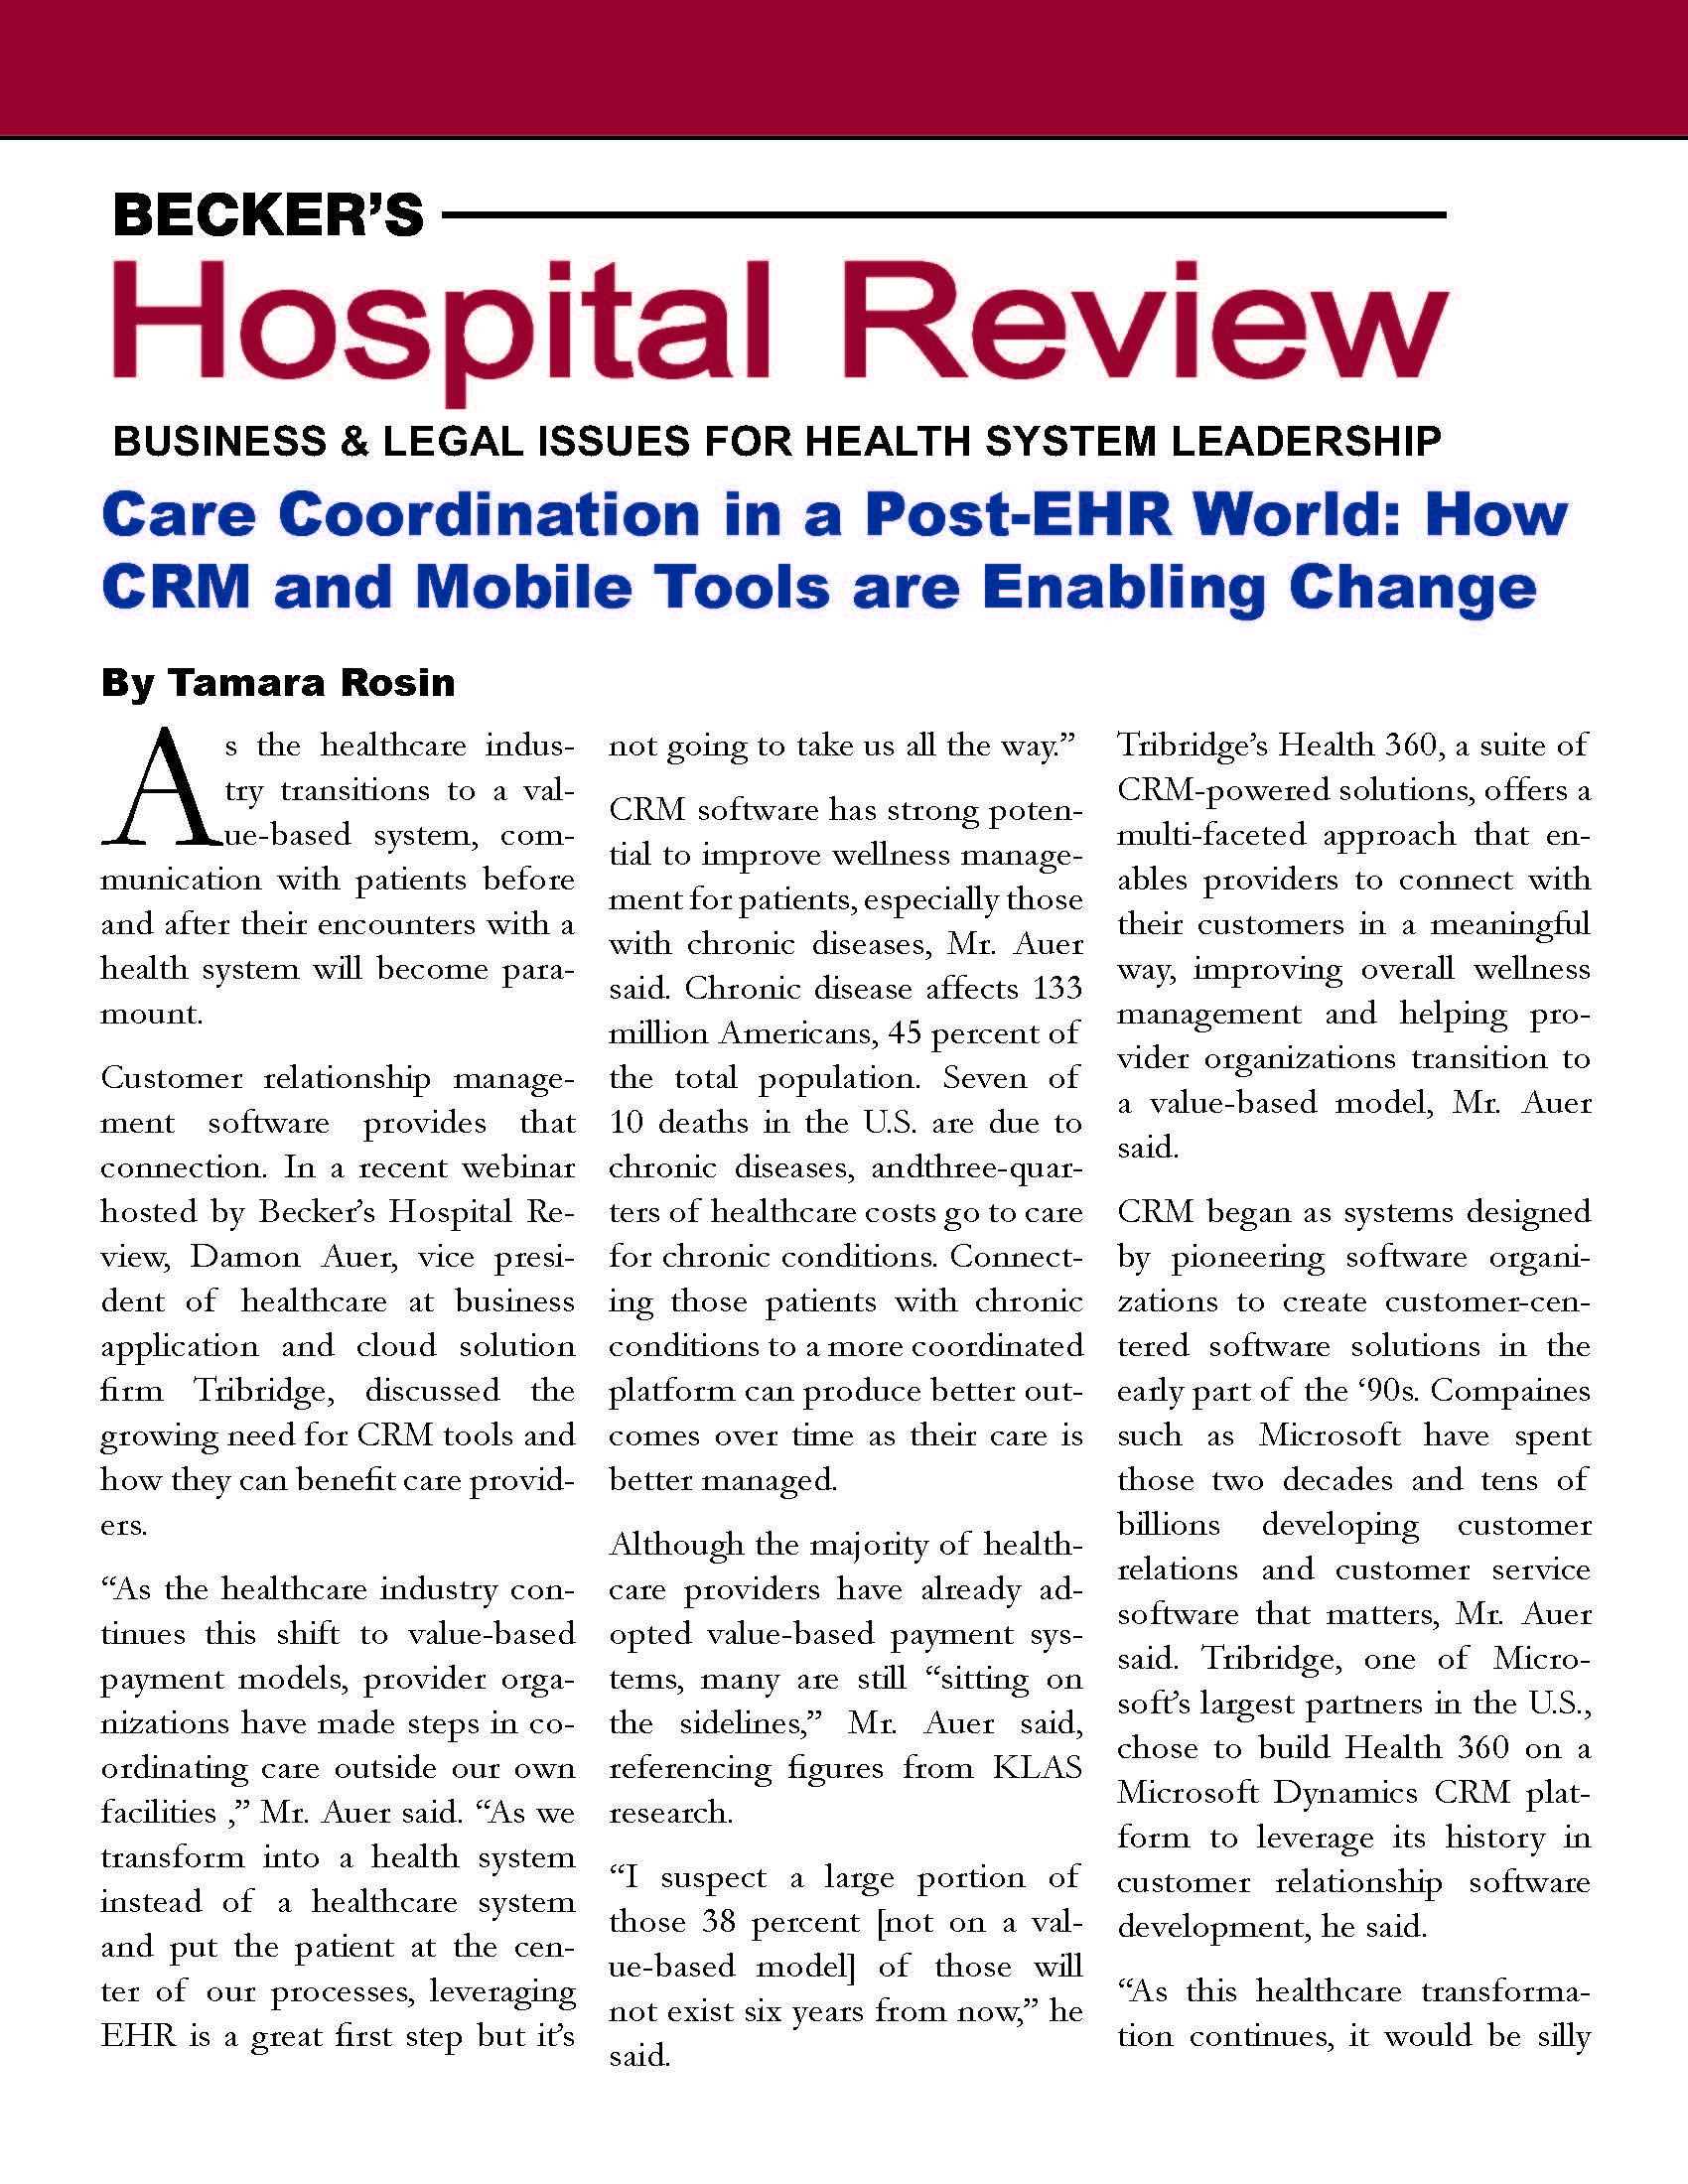 Care Coordination in Post EHR World (2)_Page_1